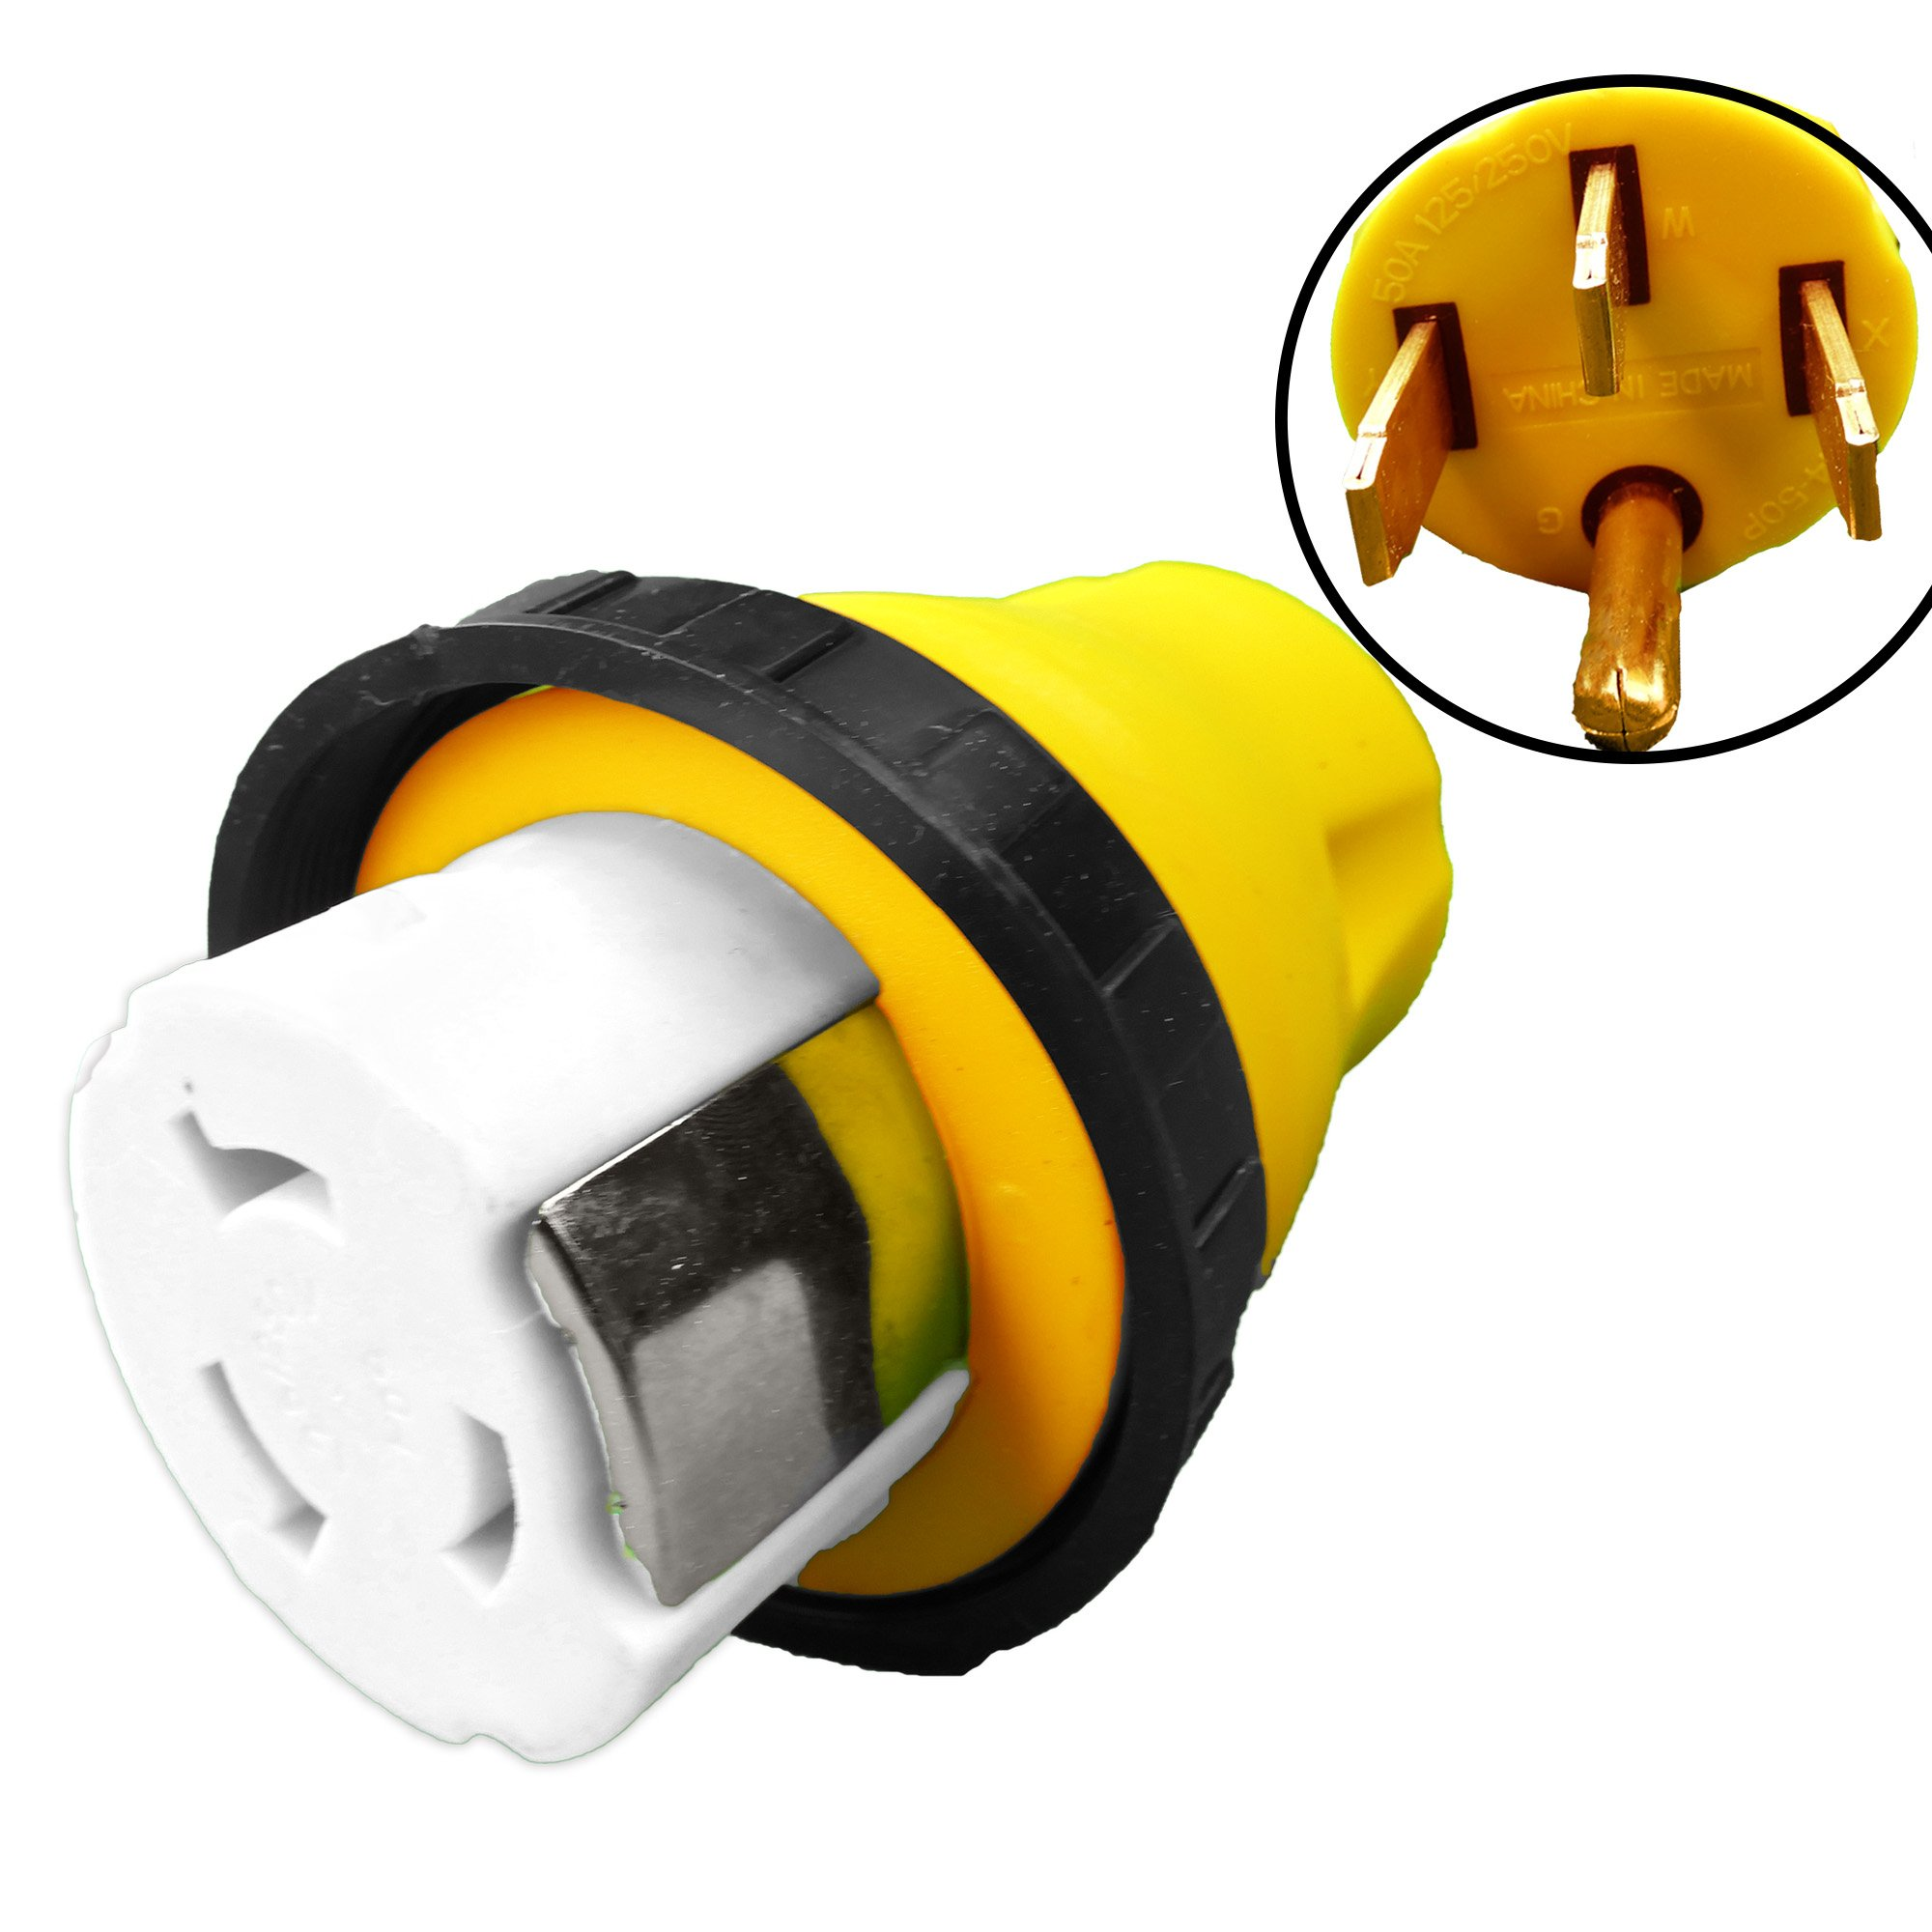 Leisure Cords 50A Male To 50Amp Female Twist Adapter RV Locking Power Cord Male to Female Camper Generator Cable Adapter Electrical Converter Plug (50A Male To 50A Female) by LeisureCords (Image #4)